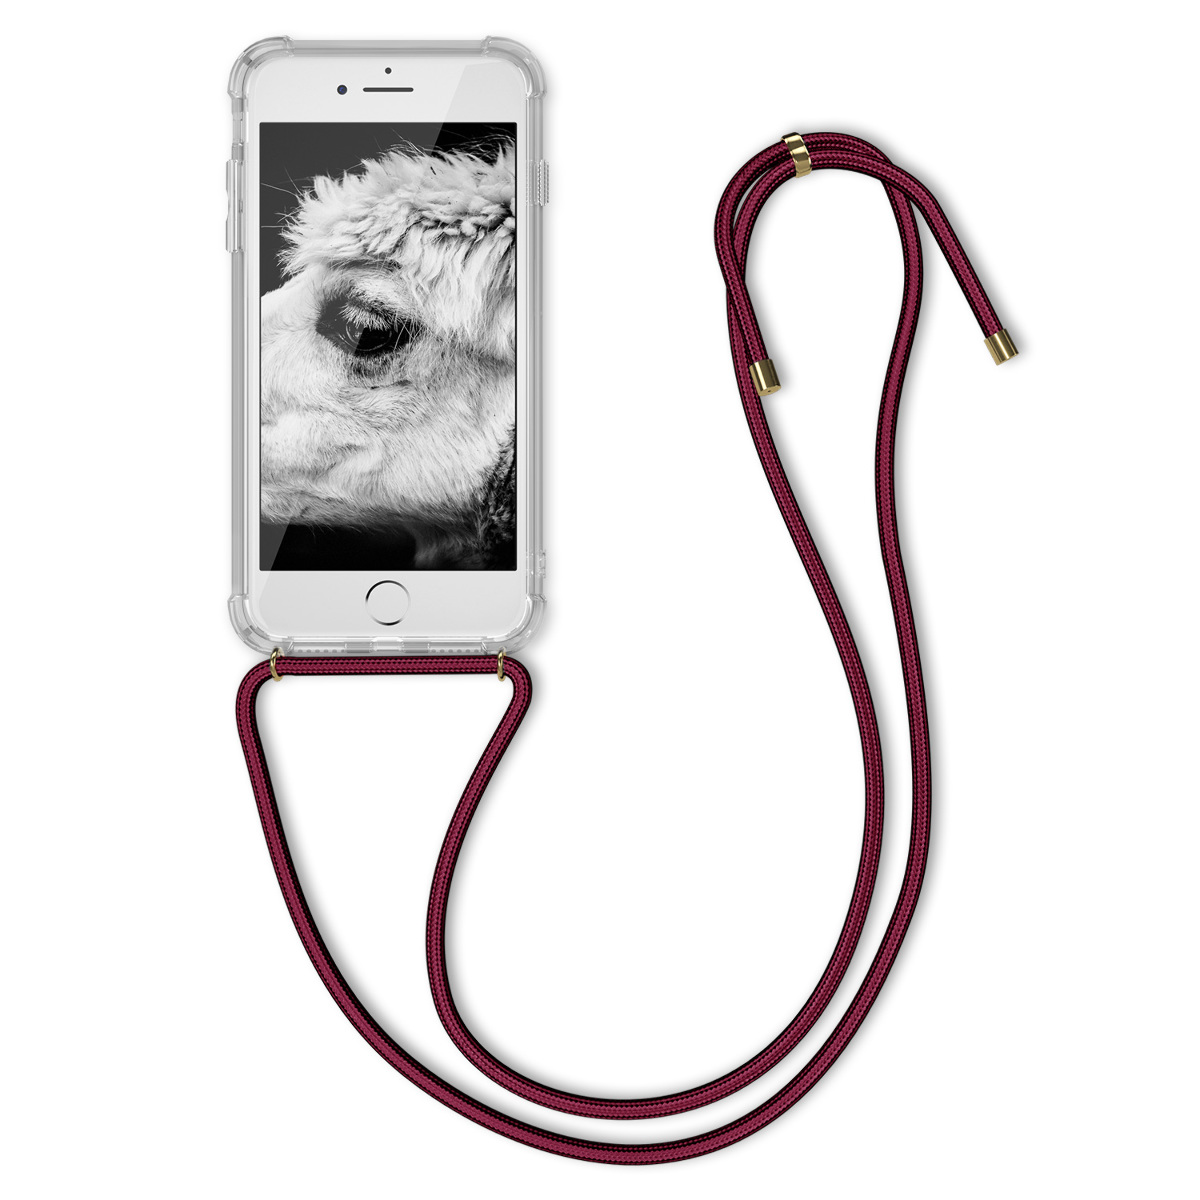 low priced 6da6a 6fb64 Details about Crossbody Case for Apple iPhone 7 8 with Neck Lanyard Strap